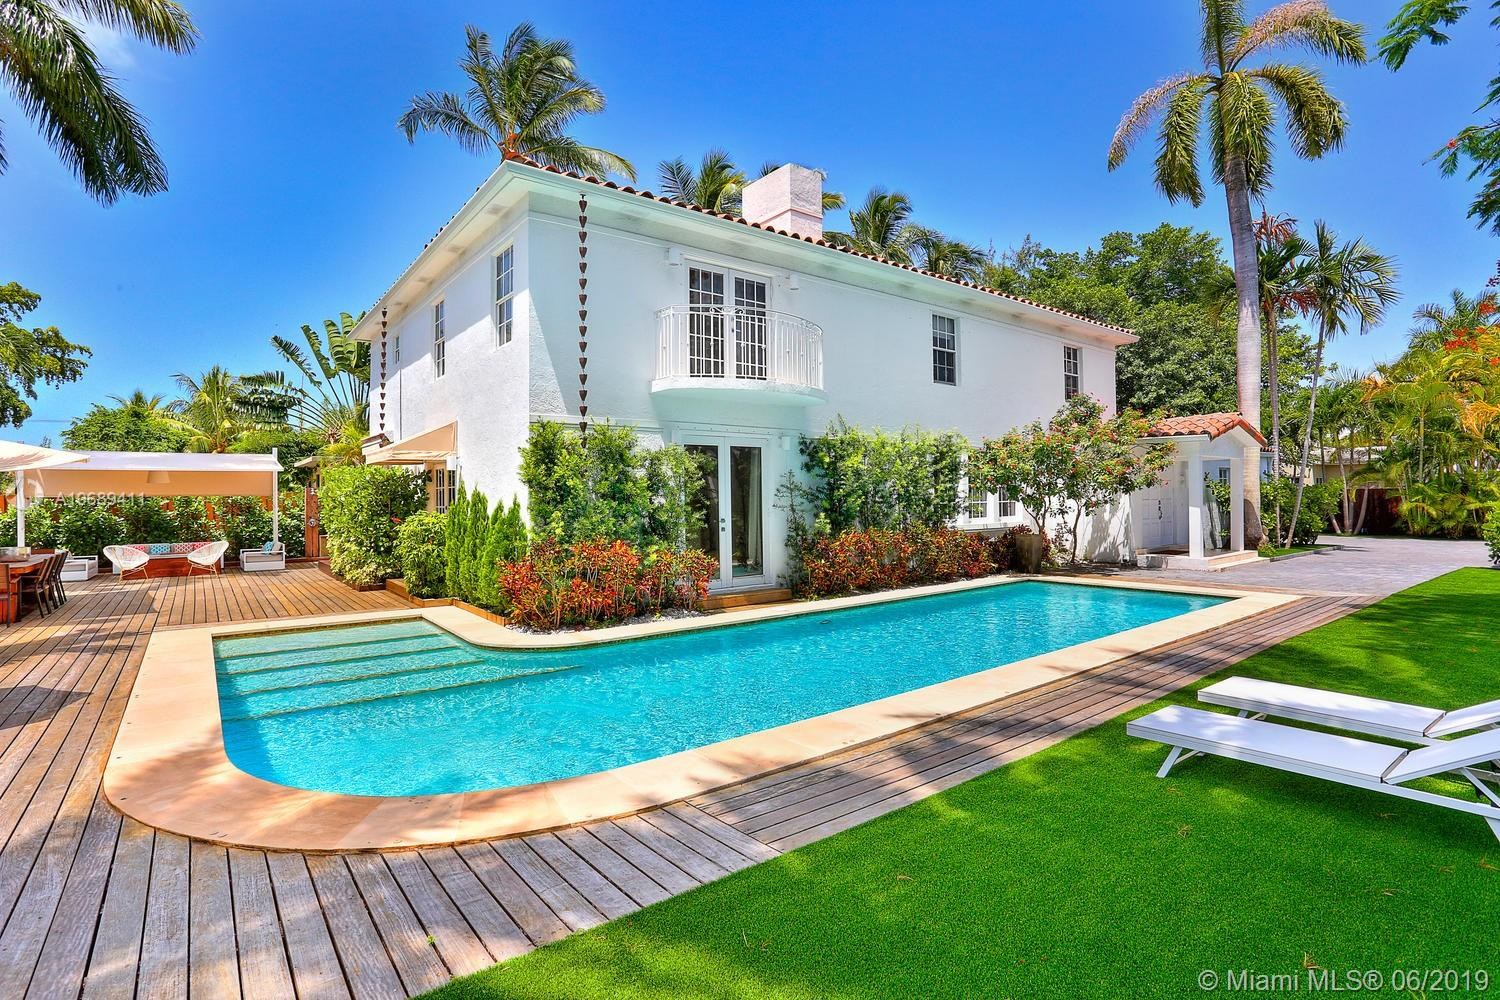 Located on gated and secured Hibiscus Island, this charming 3.857 SqFt, 2 story modern style house offers 5BD/4.5BA and was totally renovated in 2017. 4BD upstairs, including the Master Suite overlooking the L shape pool and garden. This house, located on a 9.500 Sq.Ft corner lot, is in perfect condition. 